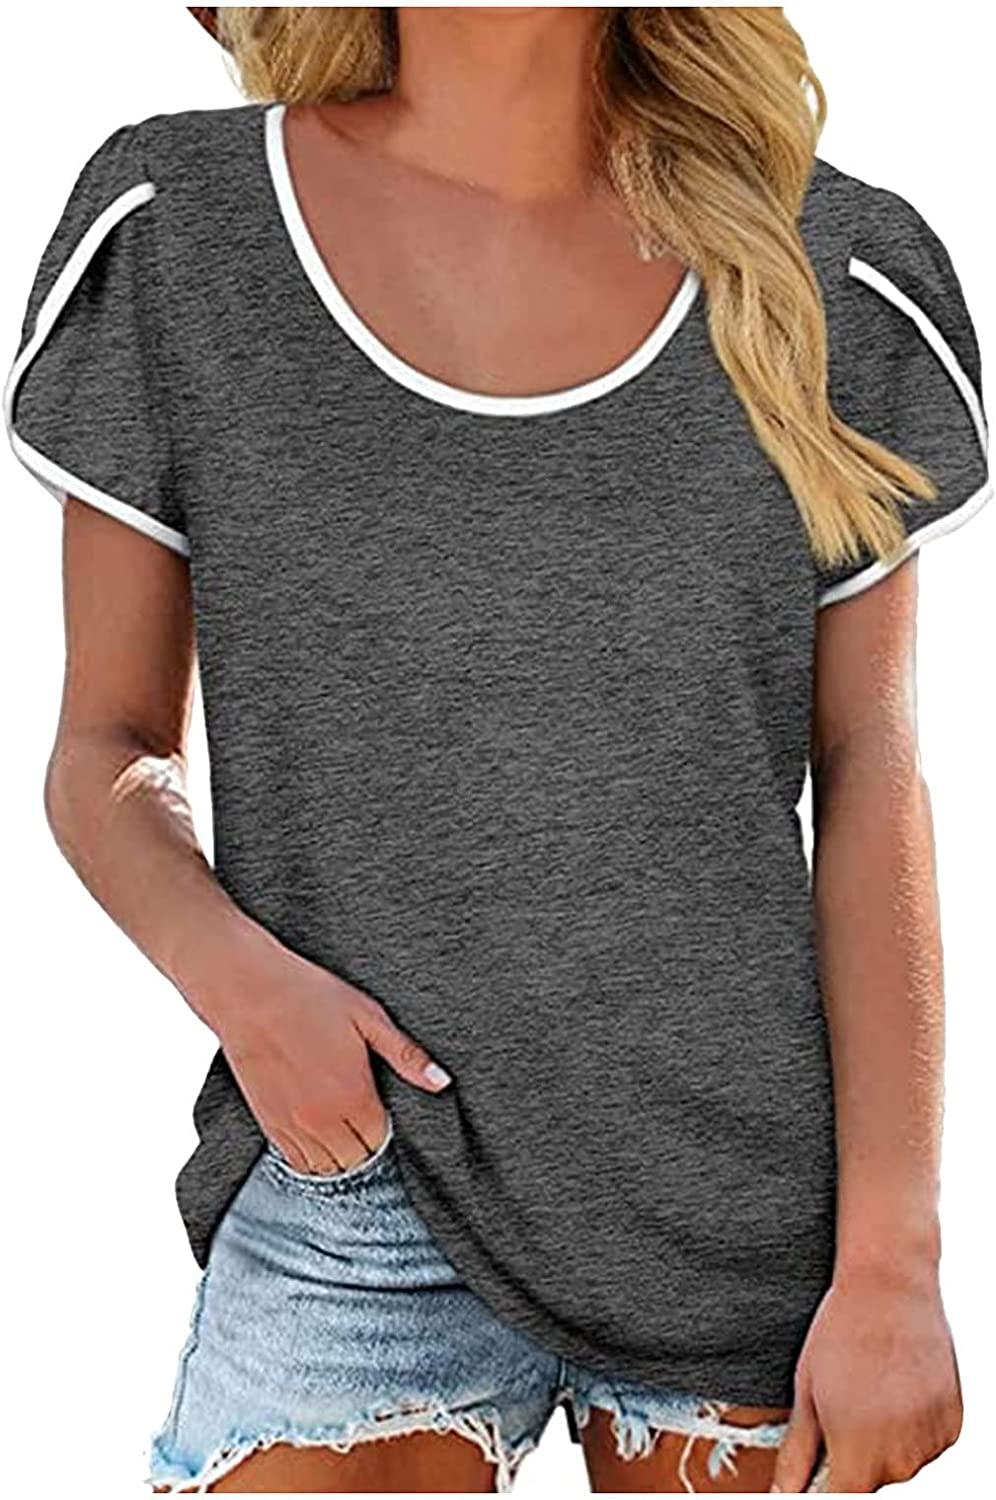 Women's Summer Casual Challenge the lowest price of Max 40% OFF Japan ☆ Solid Color Sleeve Print T-Shi Short Loose